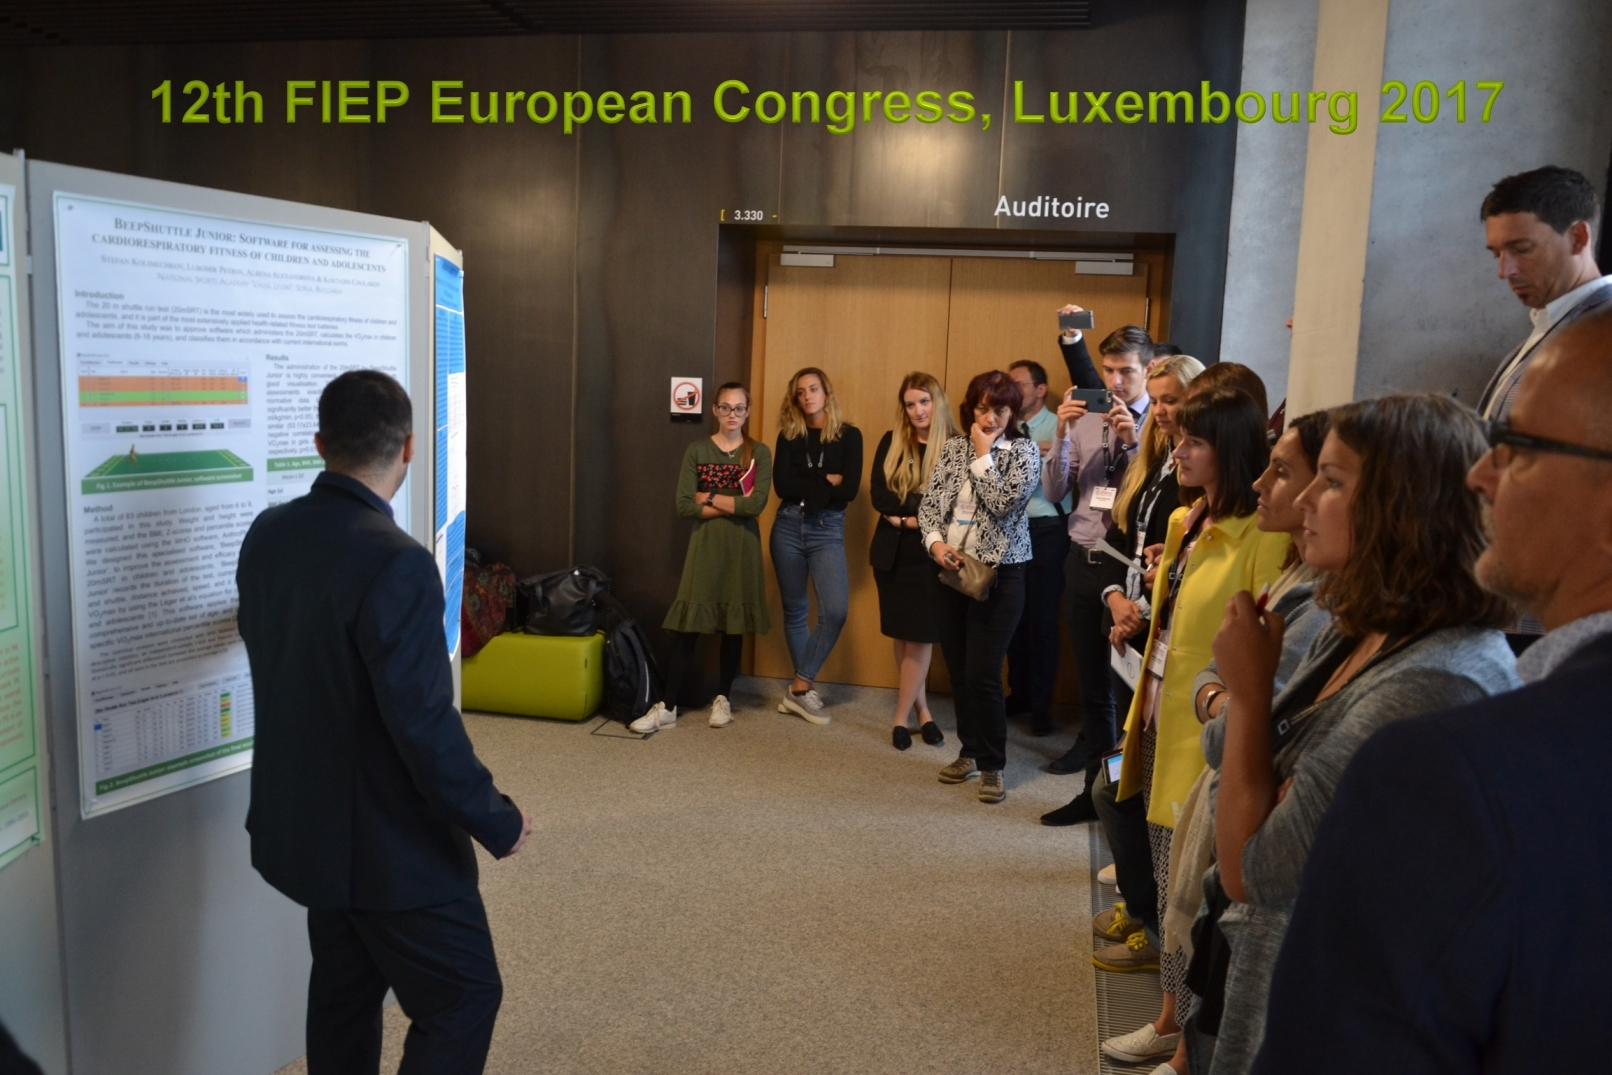 Beep Shuttle Junior was presented at the 12th FIEP European Congress in Luxembourg